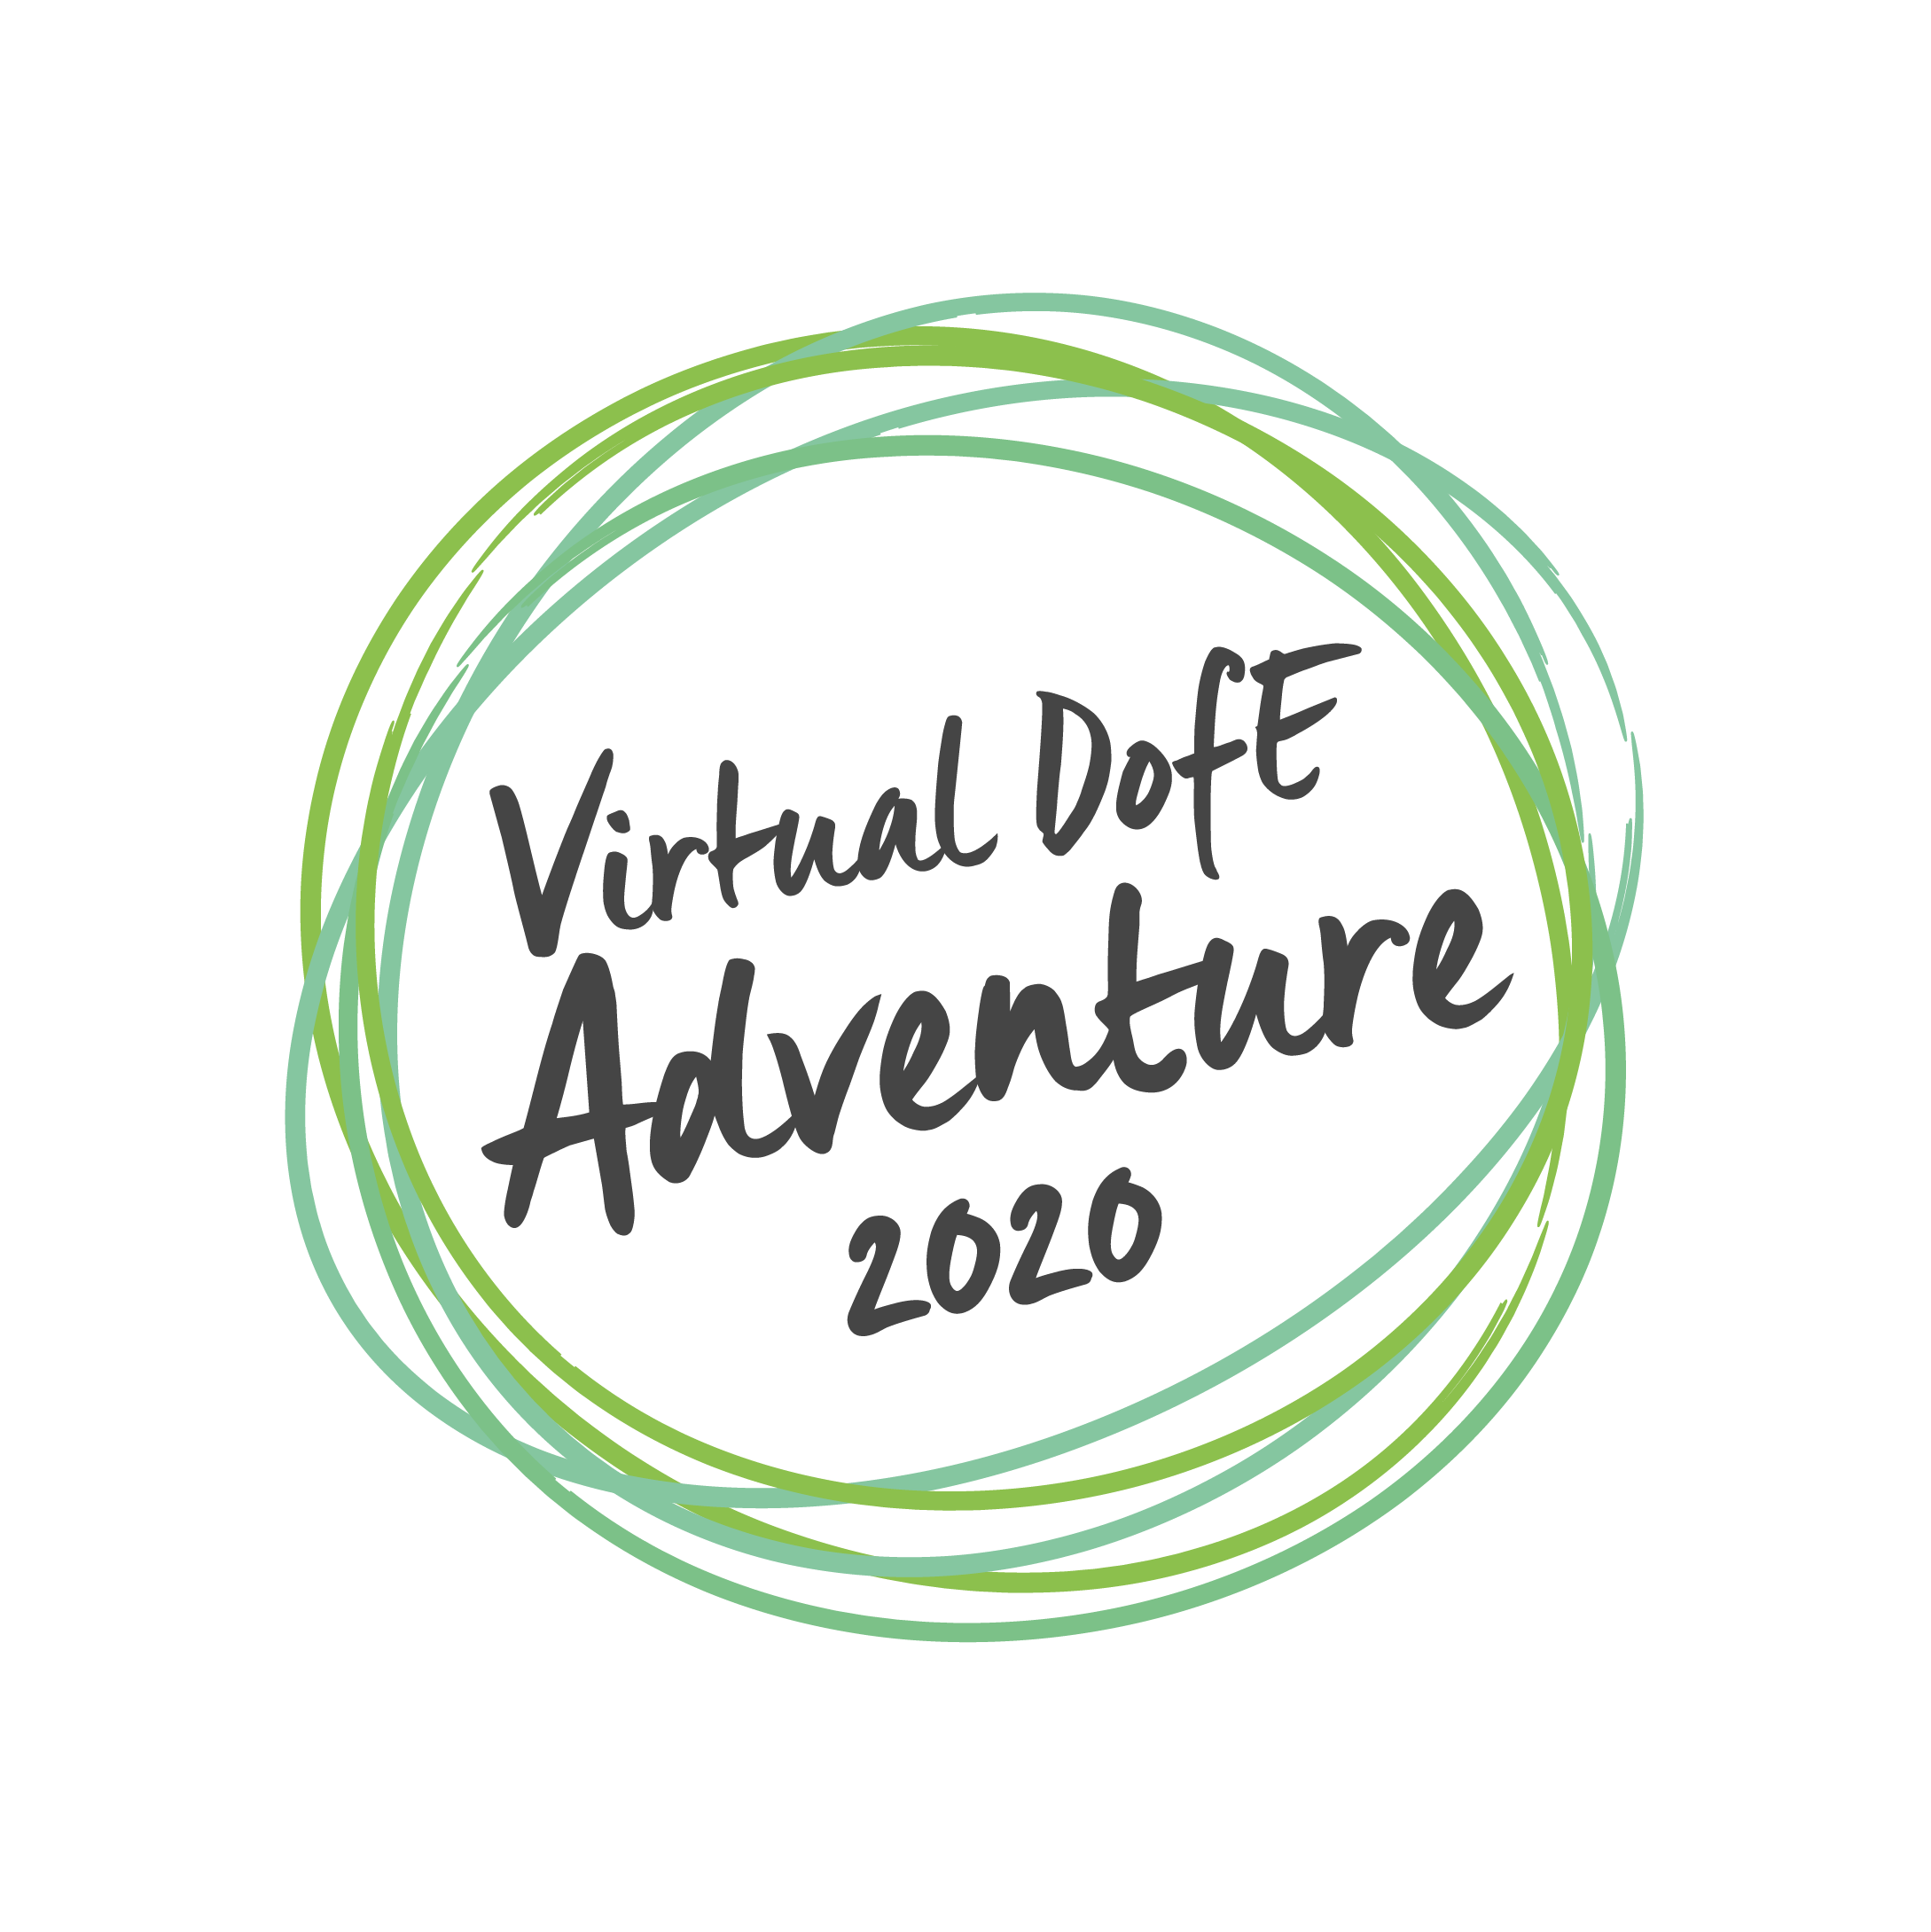 Virtual DofE Adventure